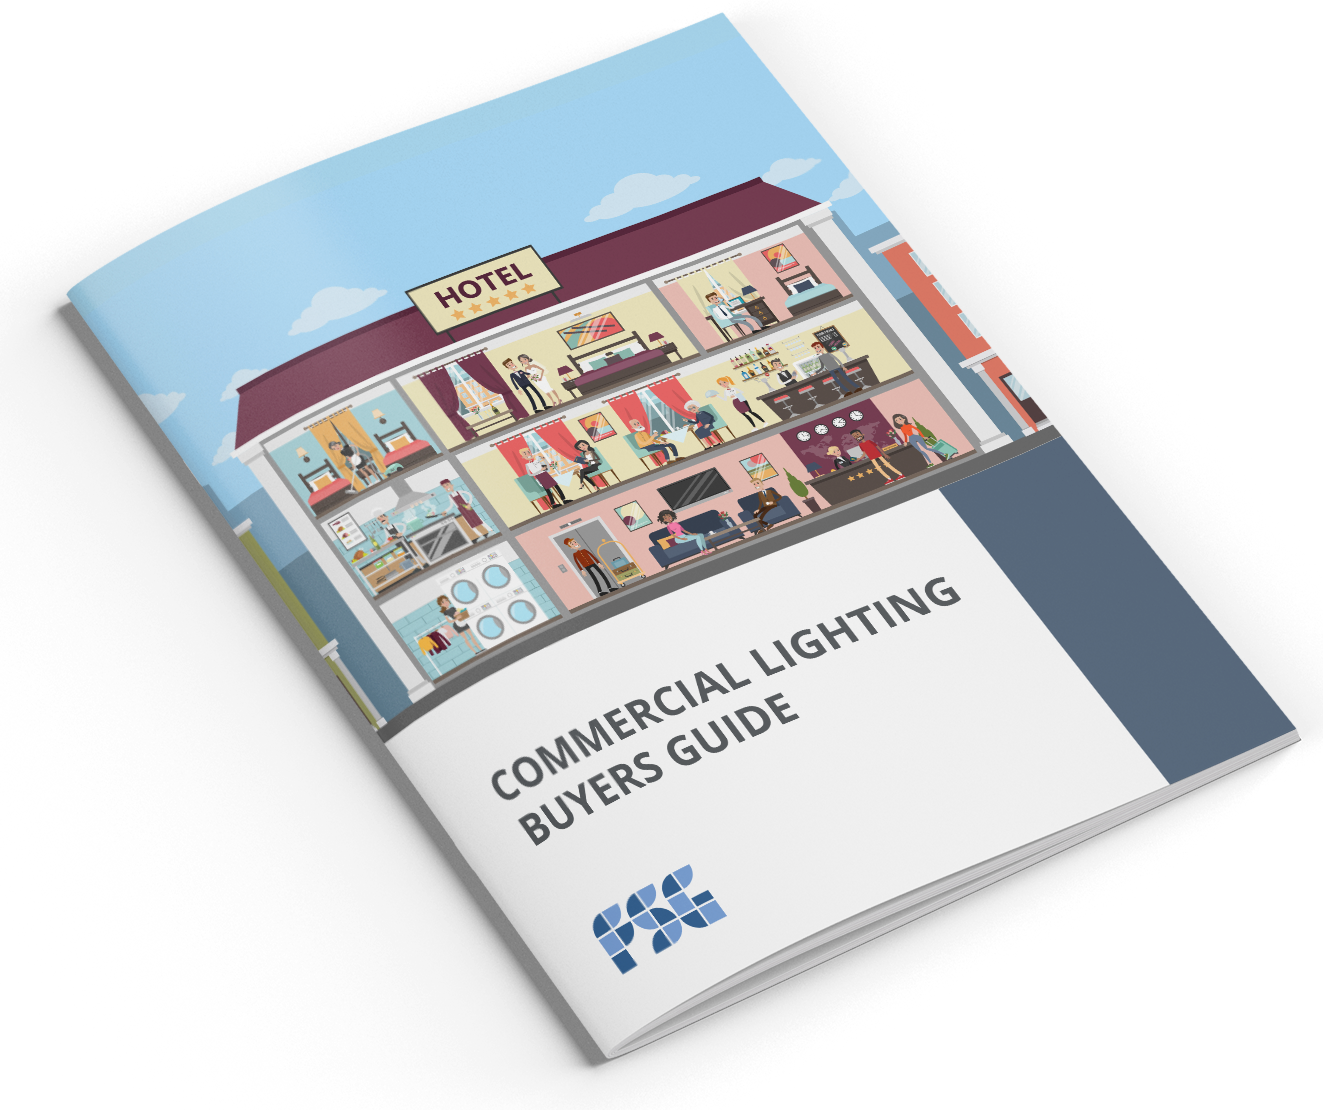 commercialLightingBuyersGuide